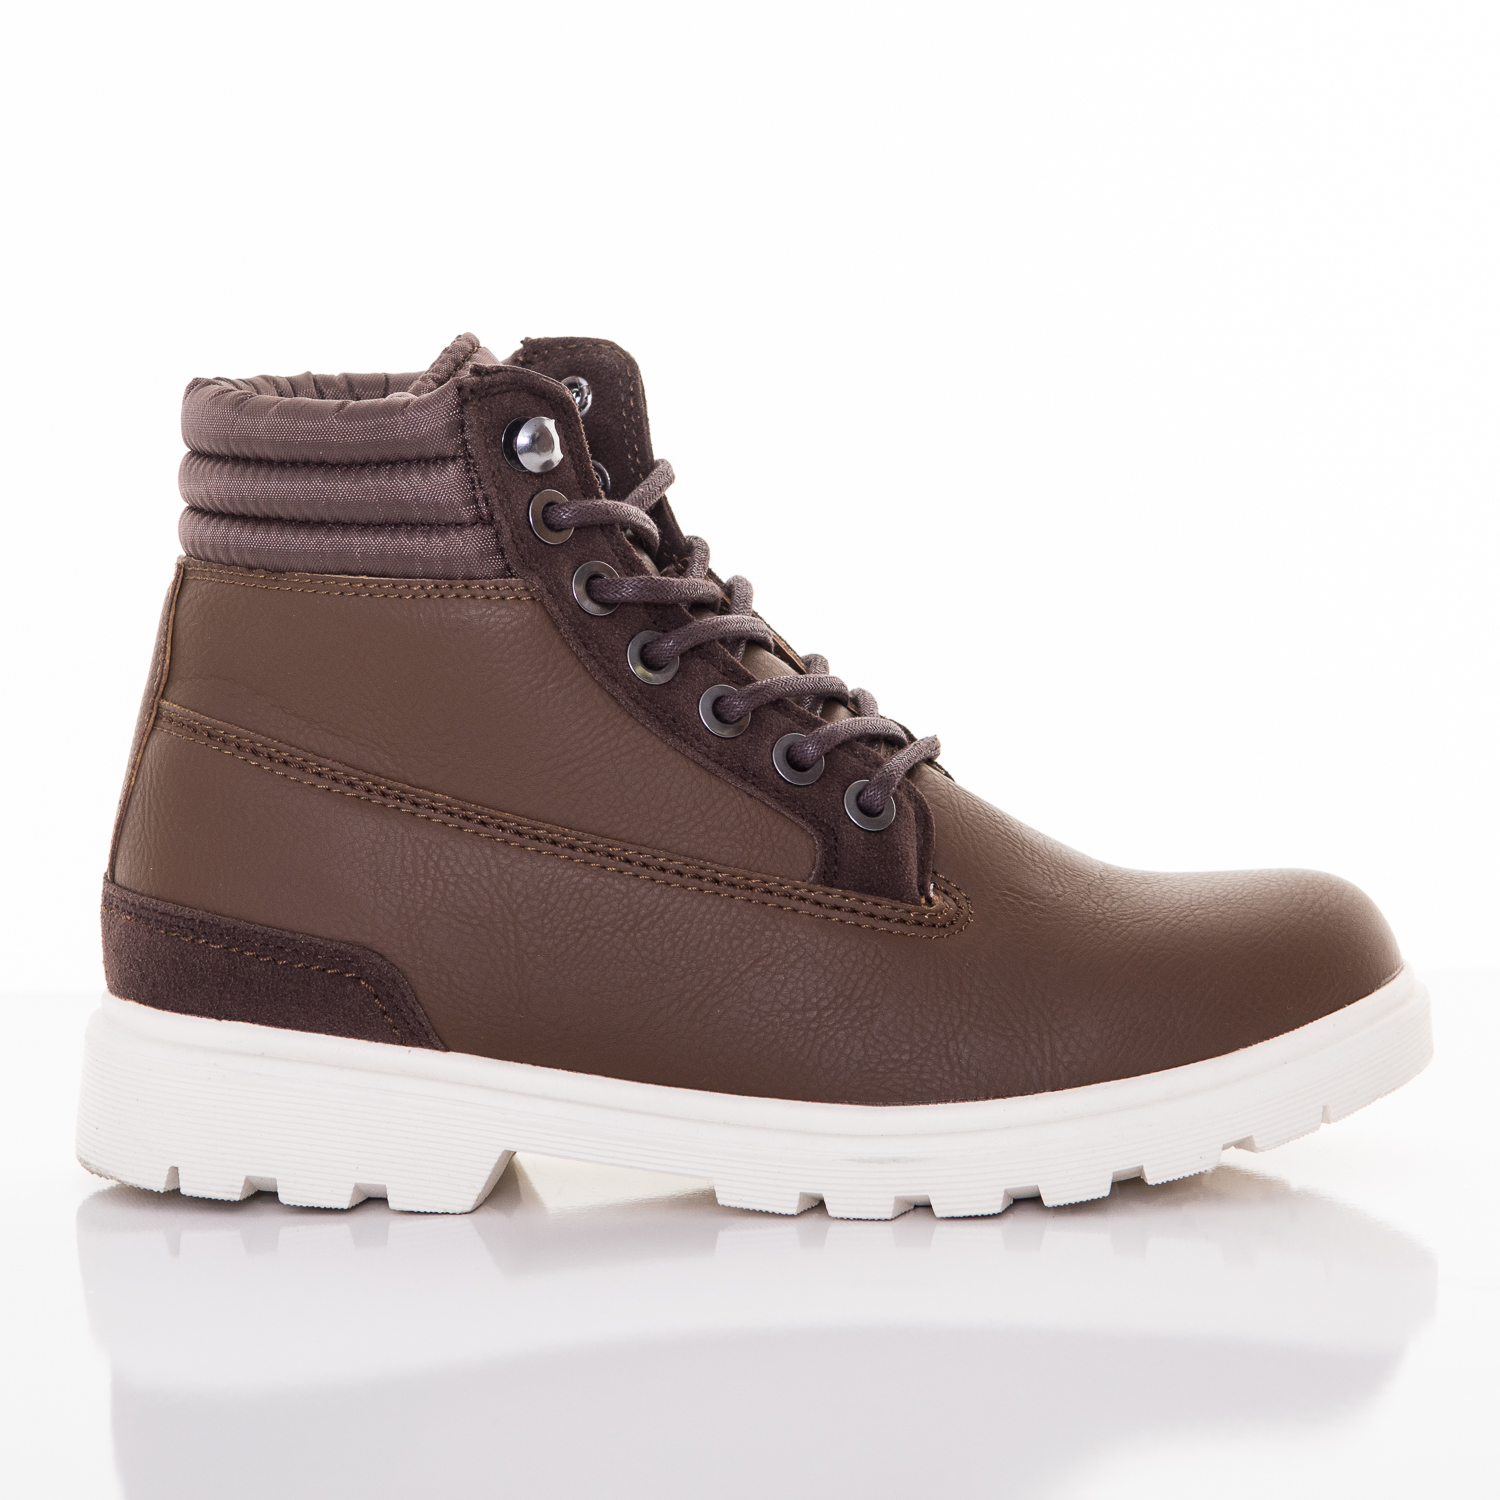 Zimná obuv Urban Classics Winter Boots Brown Darkbrown 42